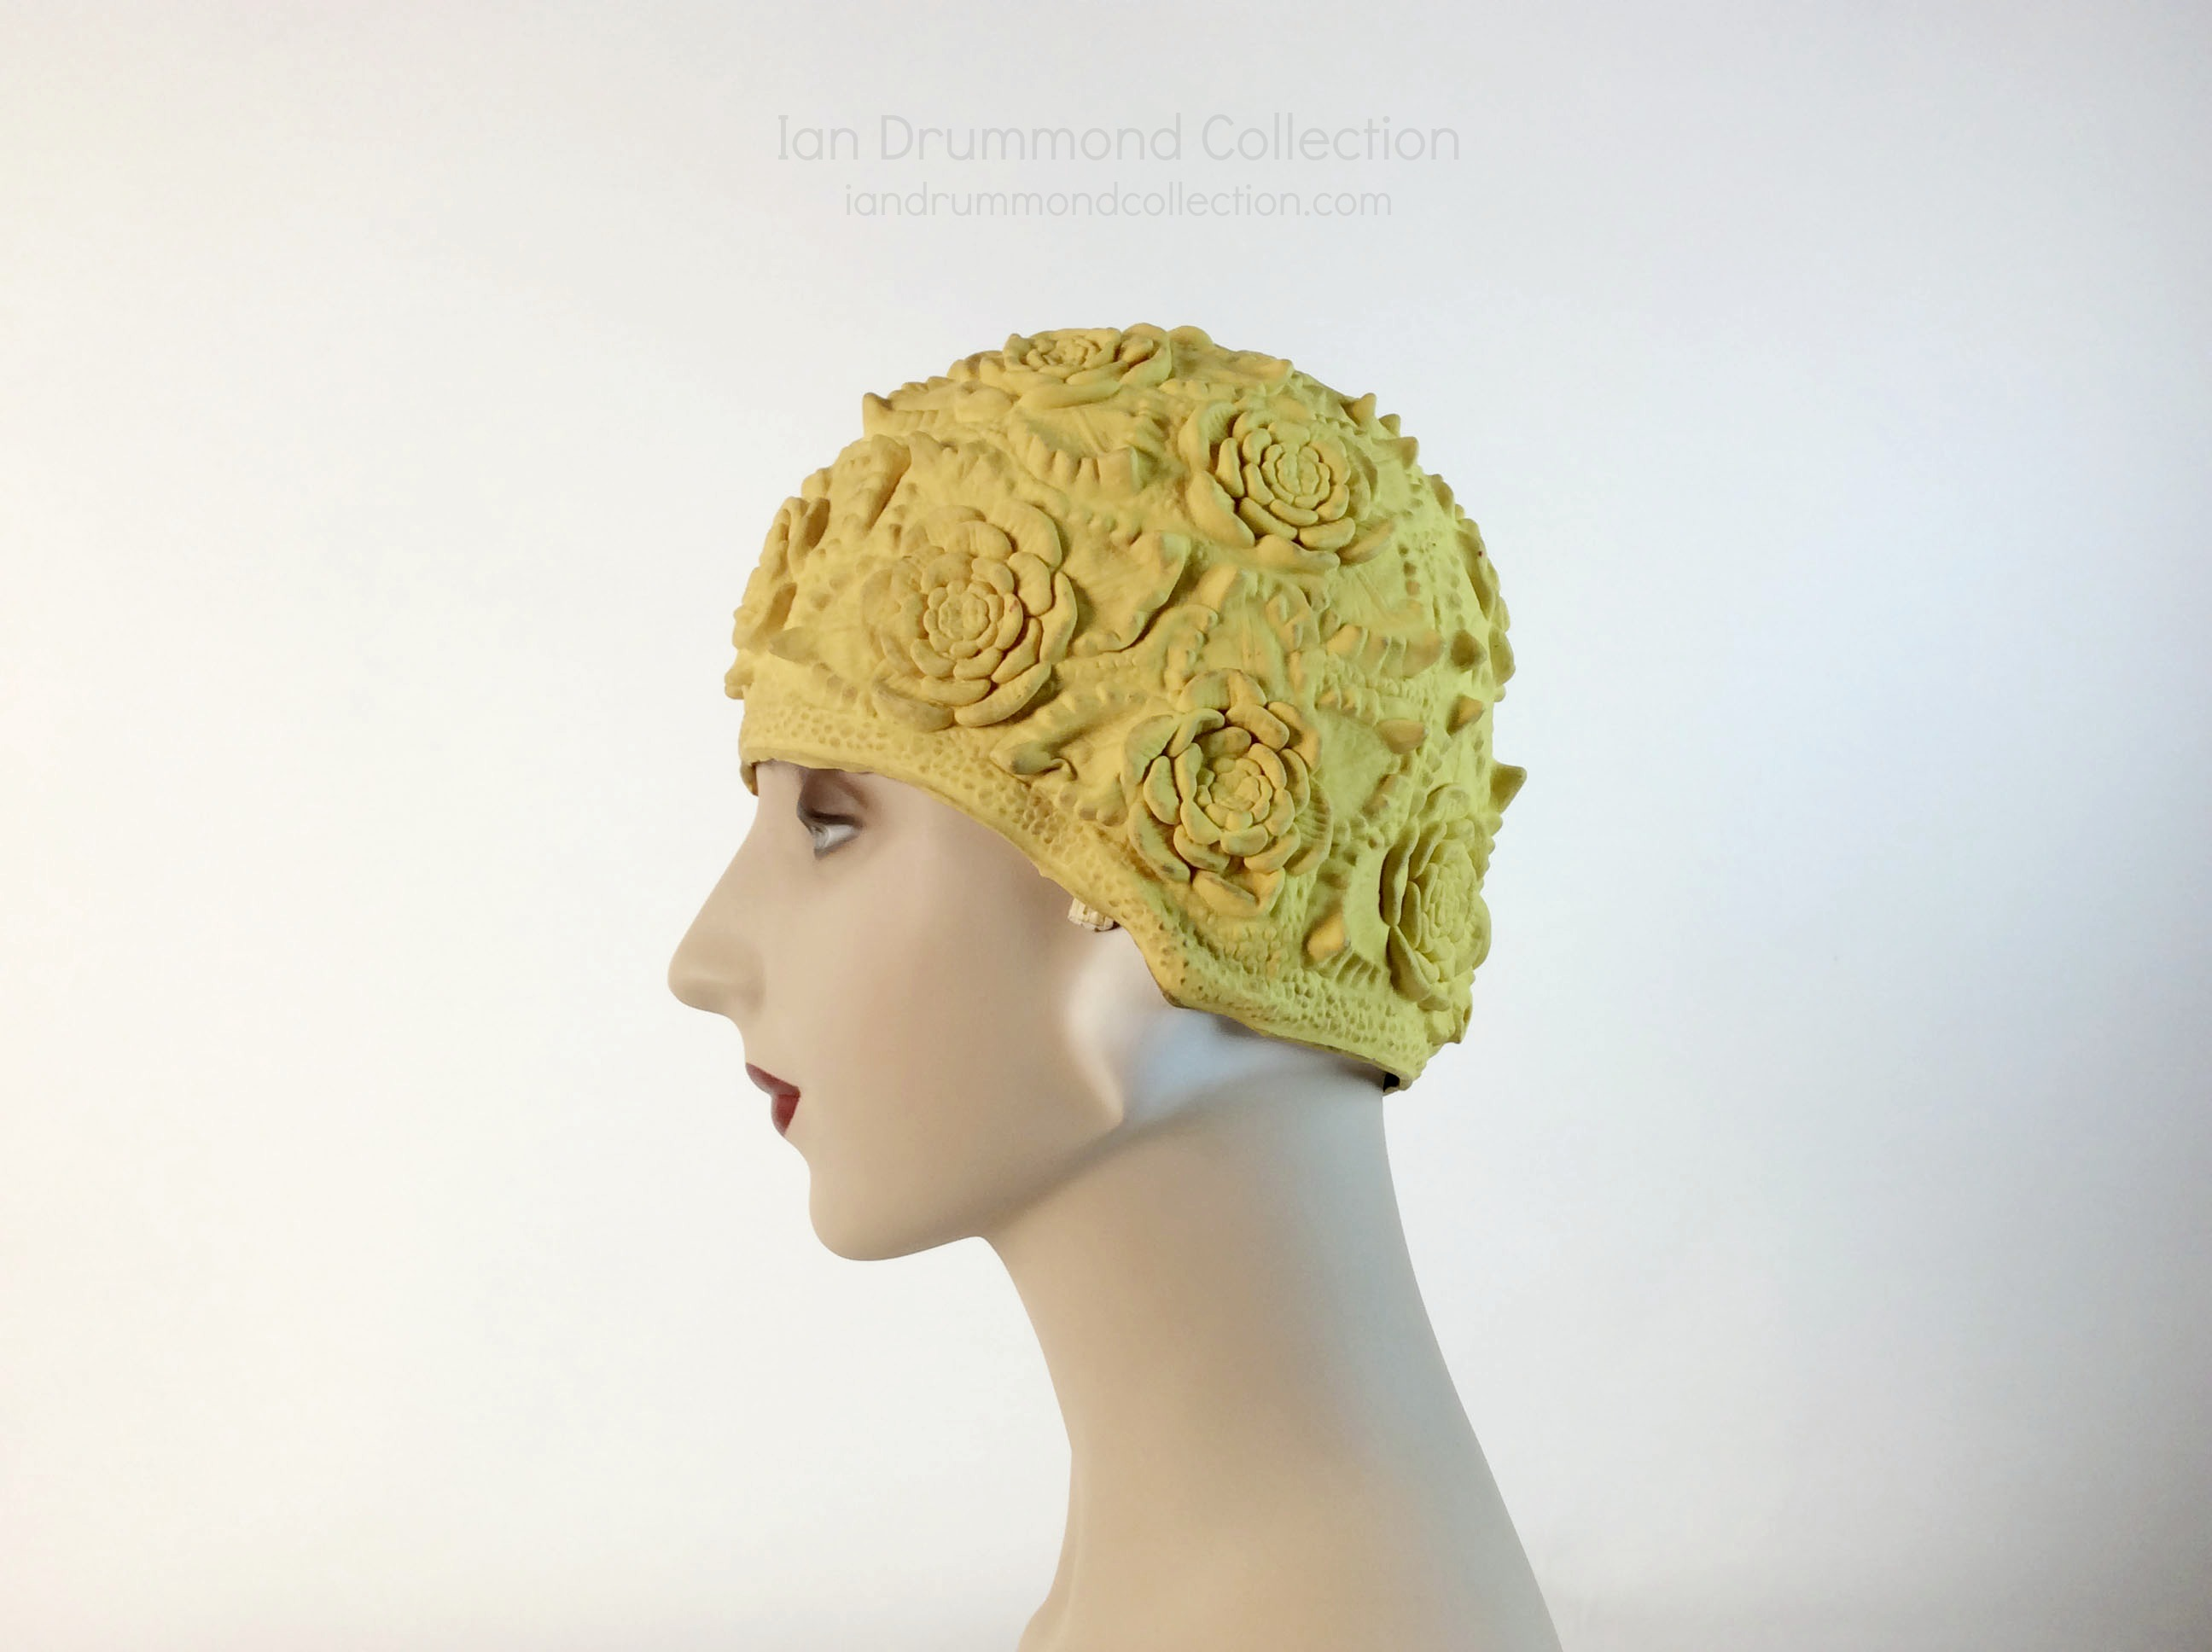 IDC Movie Wardrobe Rental Swim Cap 22 Yellow with Quilted Design and Raised Flowers